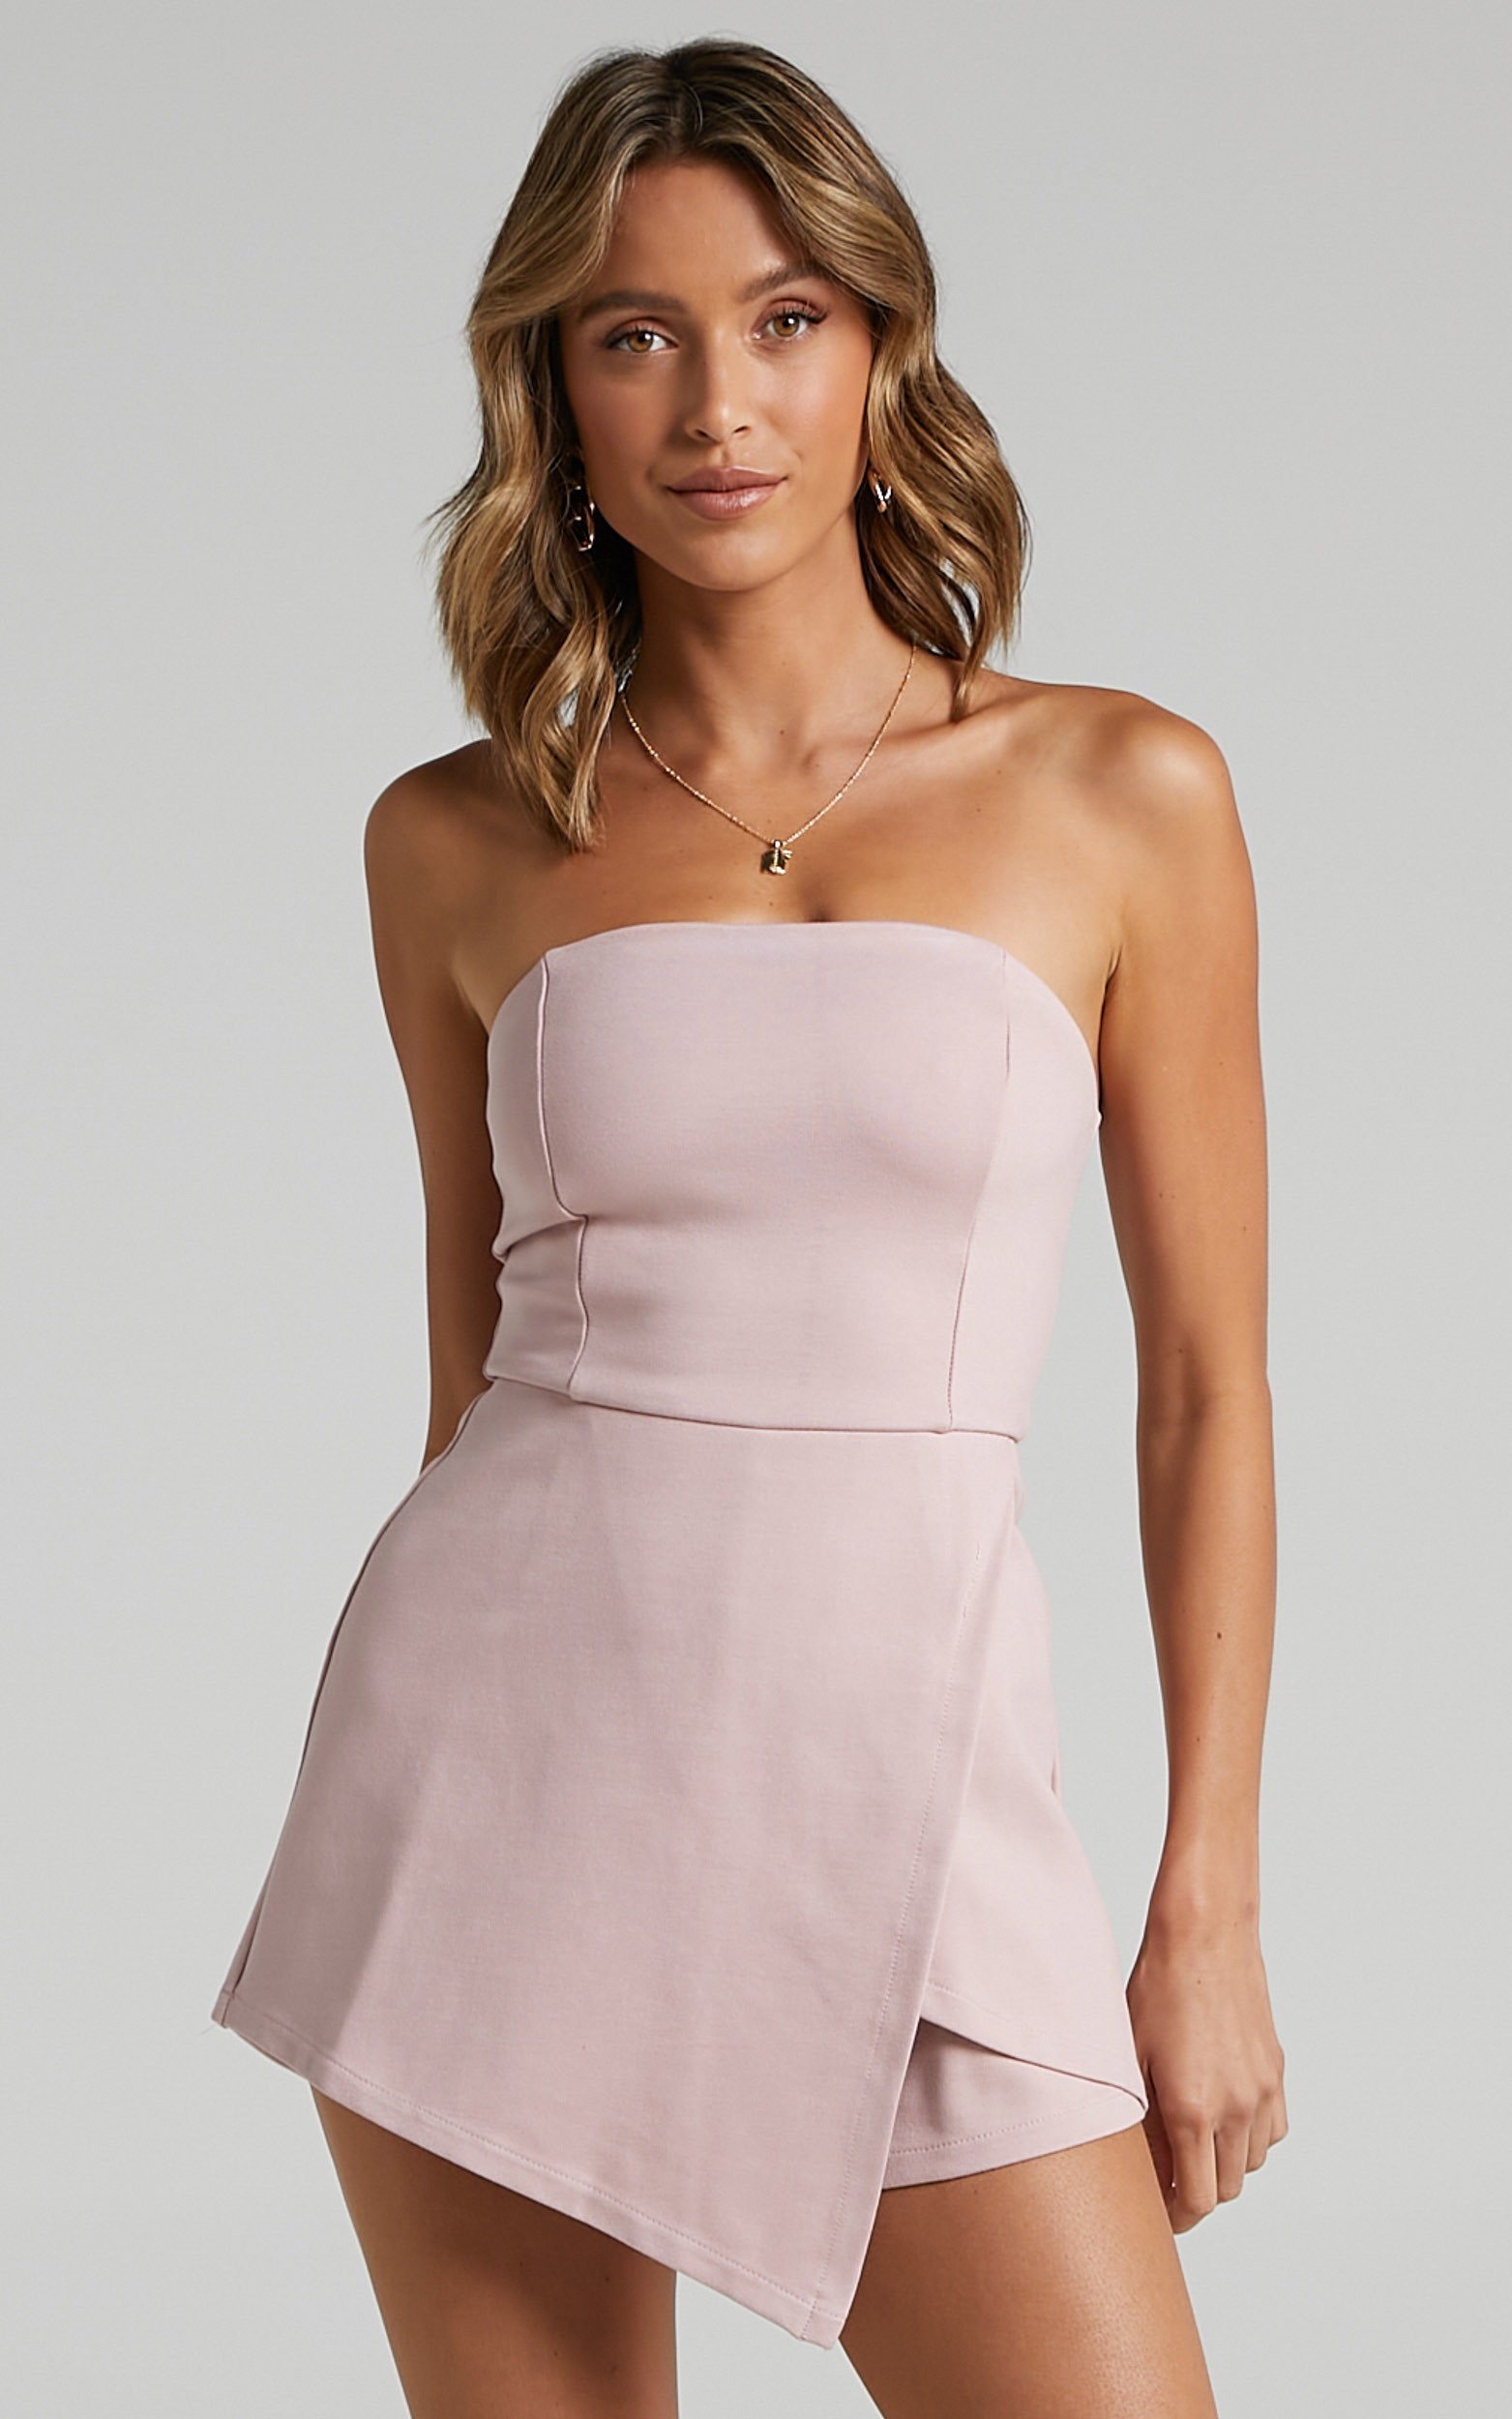 Caught My Eyes playsuit in Blush - 4 (XXS), BLU1, hi-res image number null